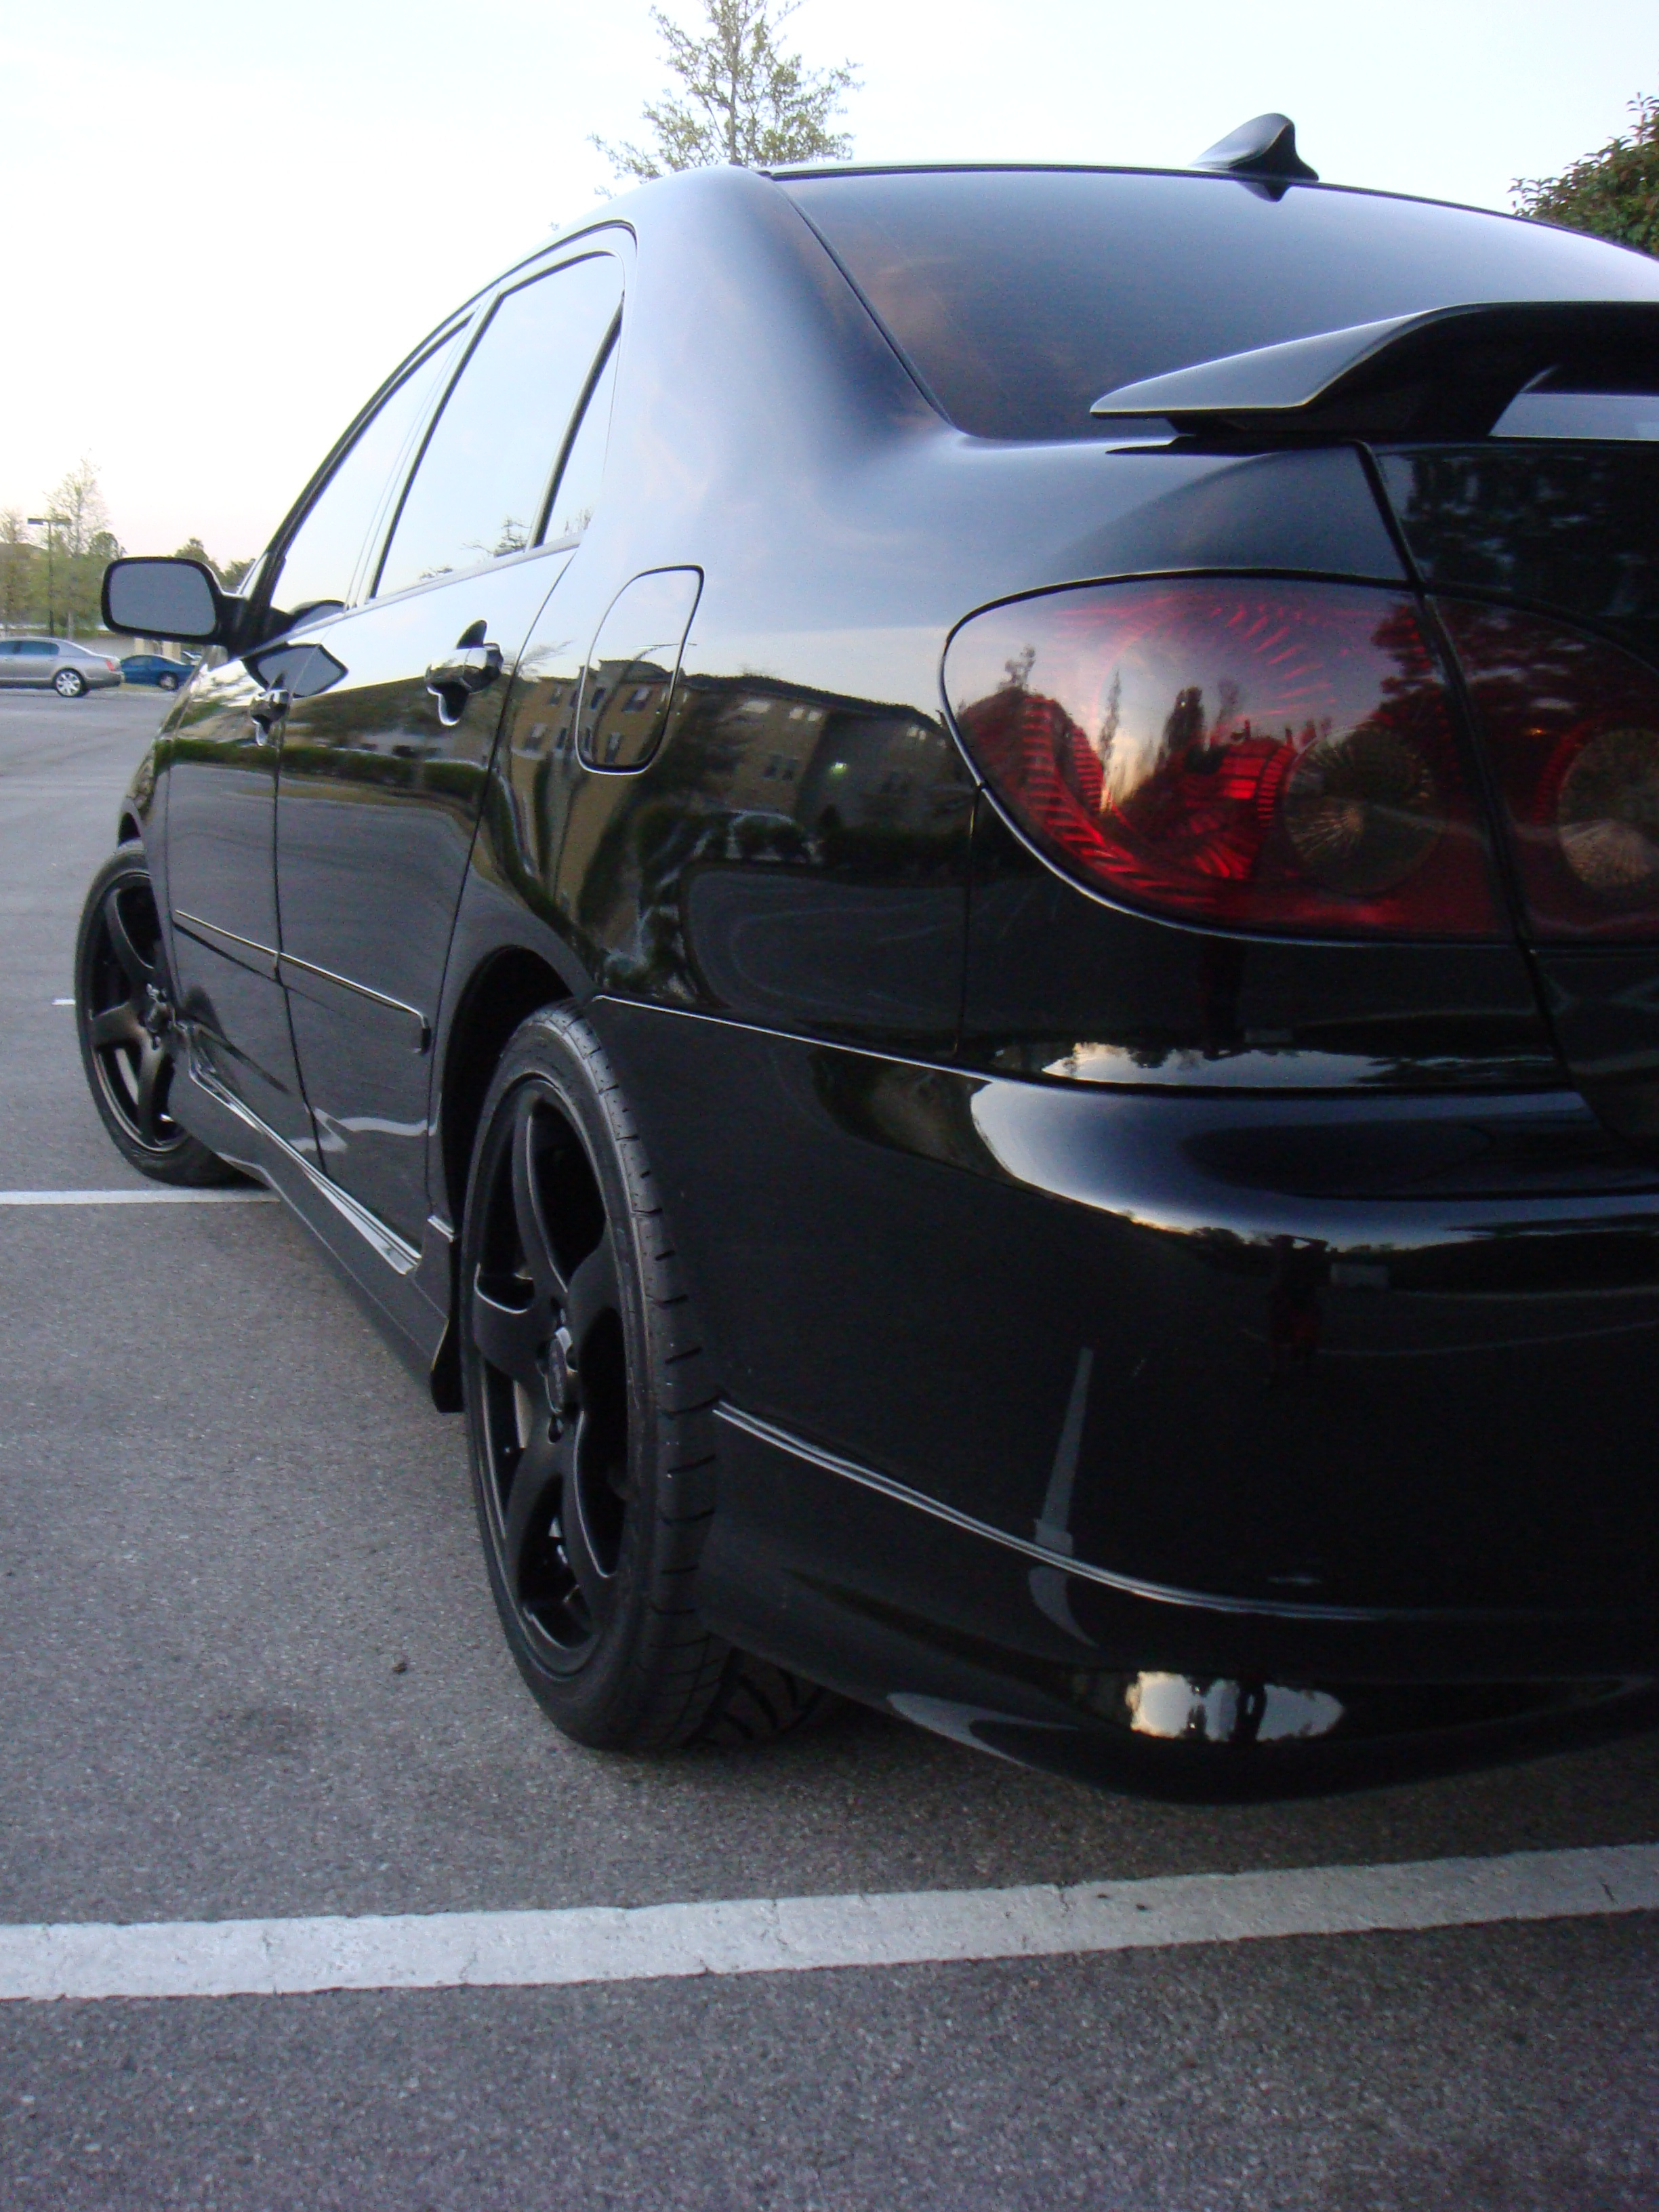 PITCH-BLACK 2007 Toyota Corolla Specs, Photos, Modification Info at CarDomain